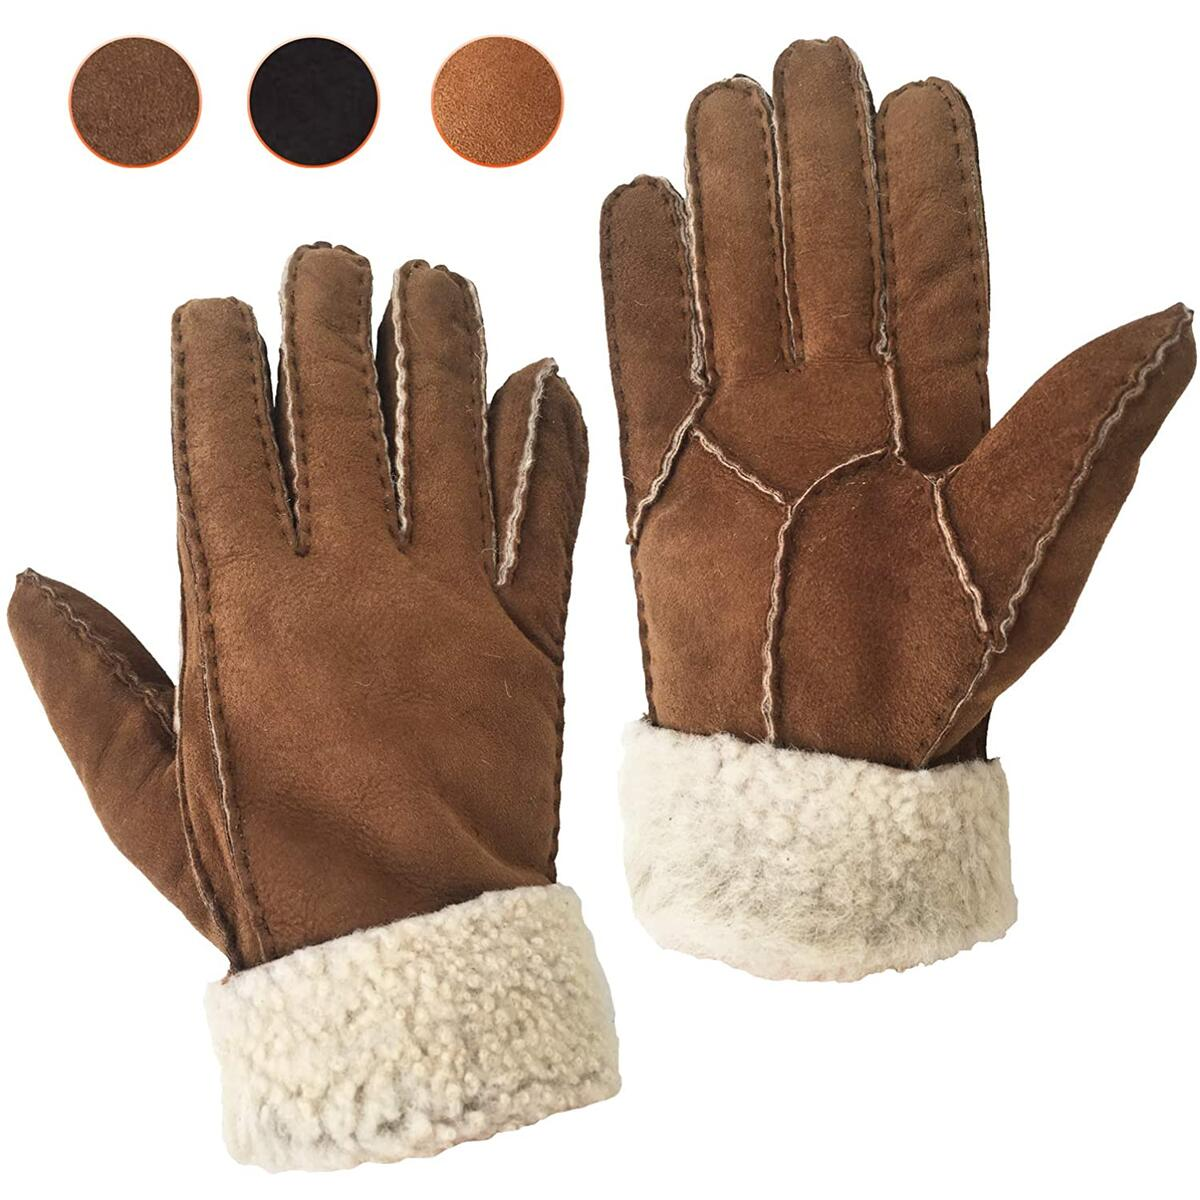 Genuine Shearling Sheepskin Fur Lined Leather Gloves | Winter Gloves for Women | Cold Weather Work, Driving Womans Glove